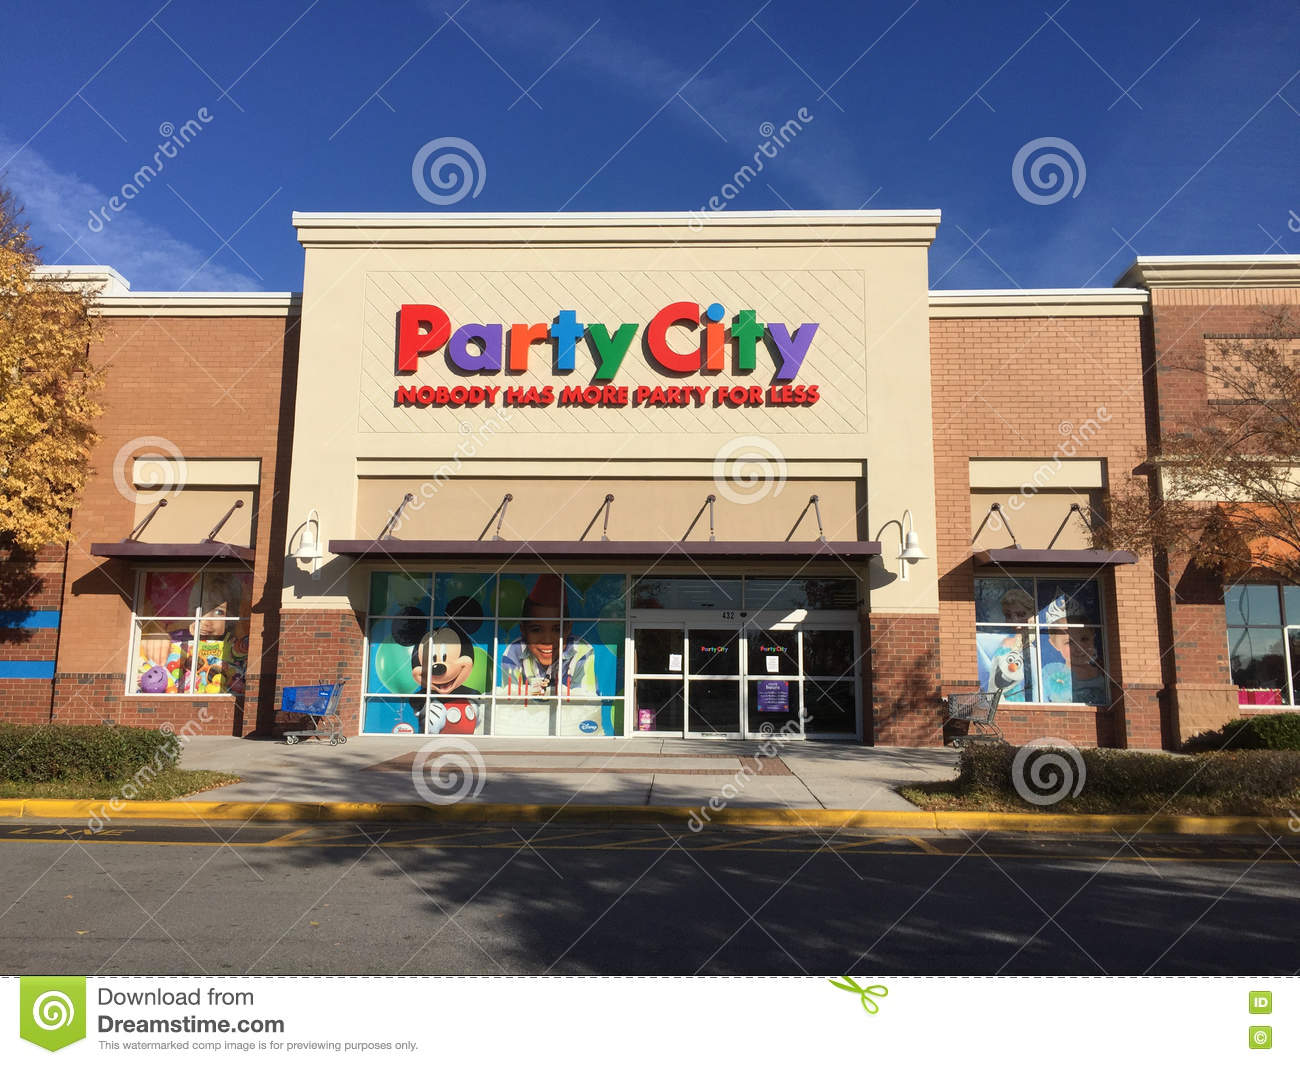 Party city coupons 2019 in store